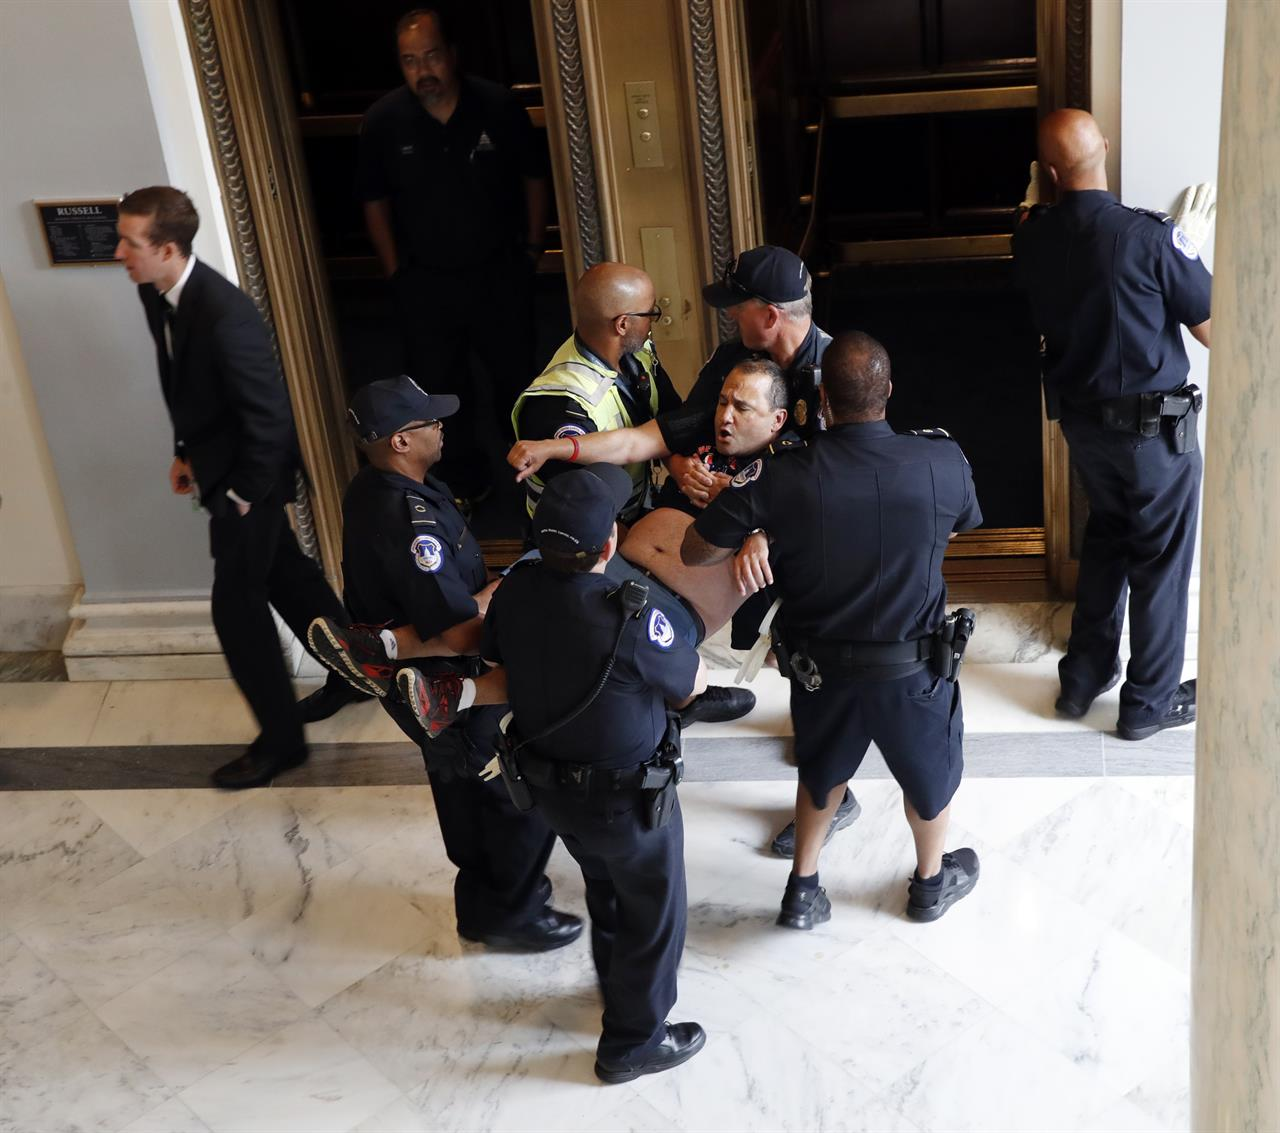 Colorado Shooting Radio Traffic: Capitol Police Arrest Protesters Outside McConnell's